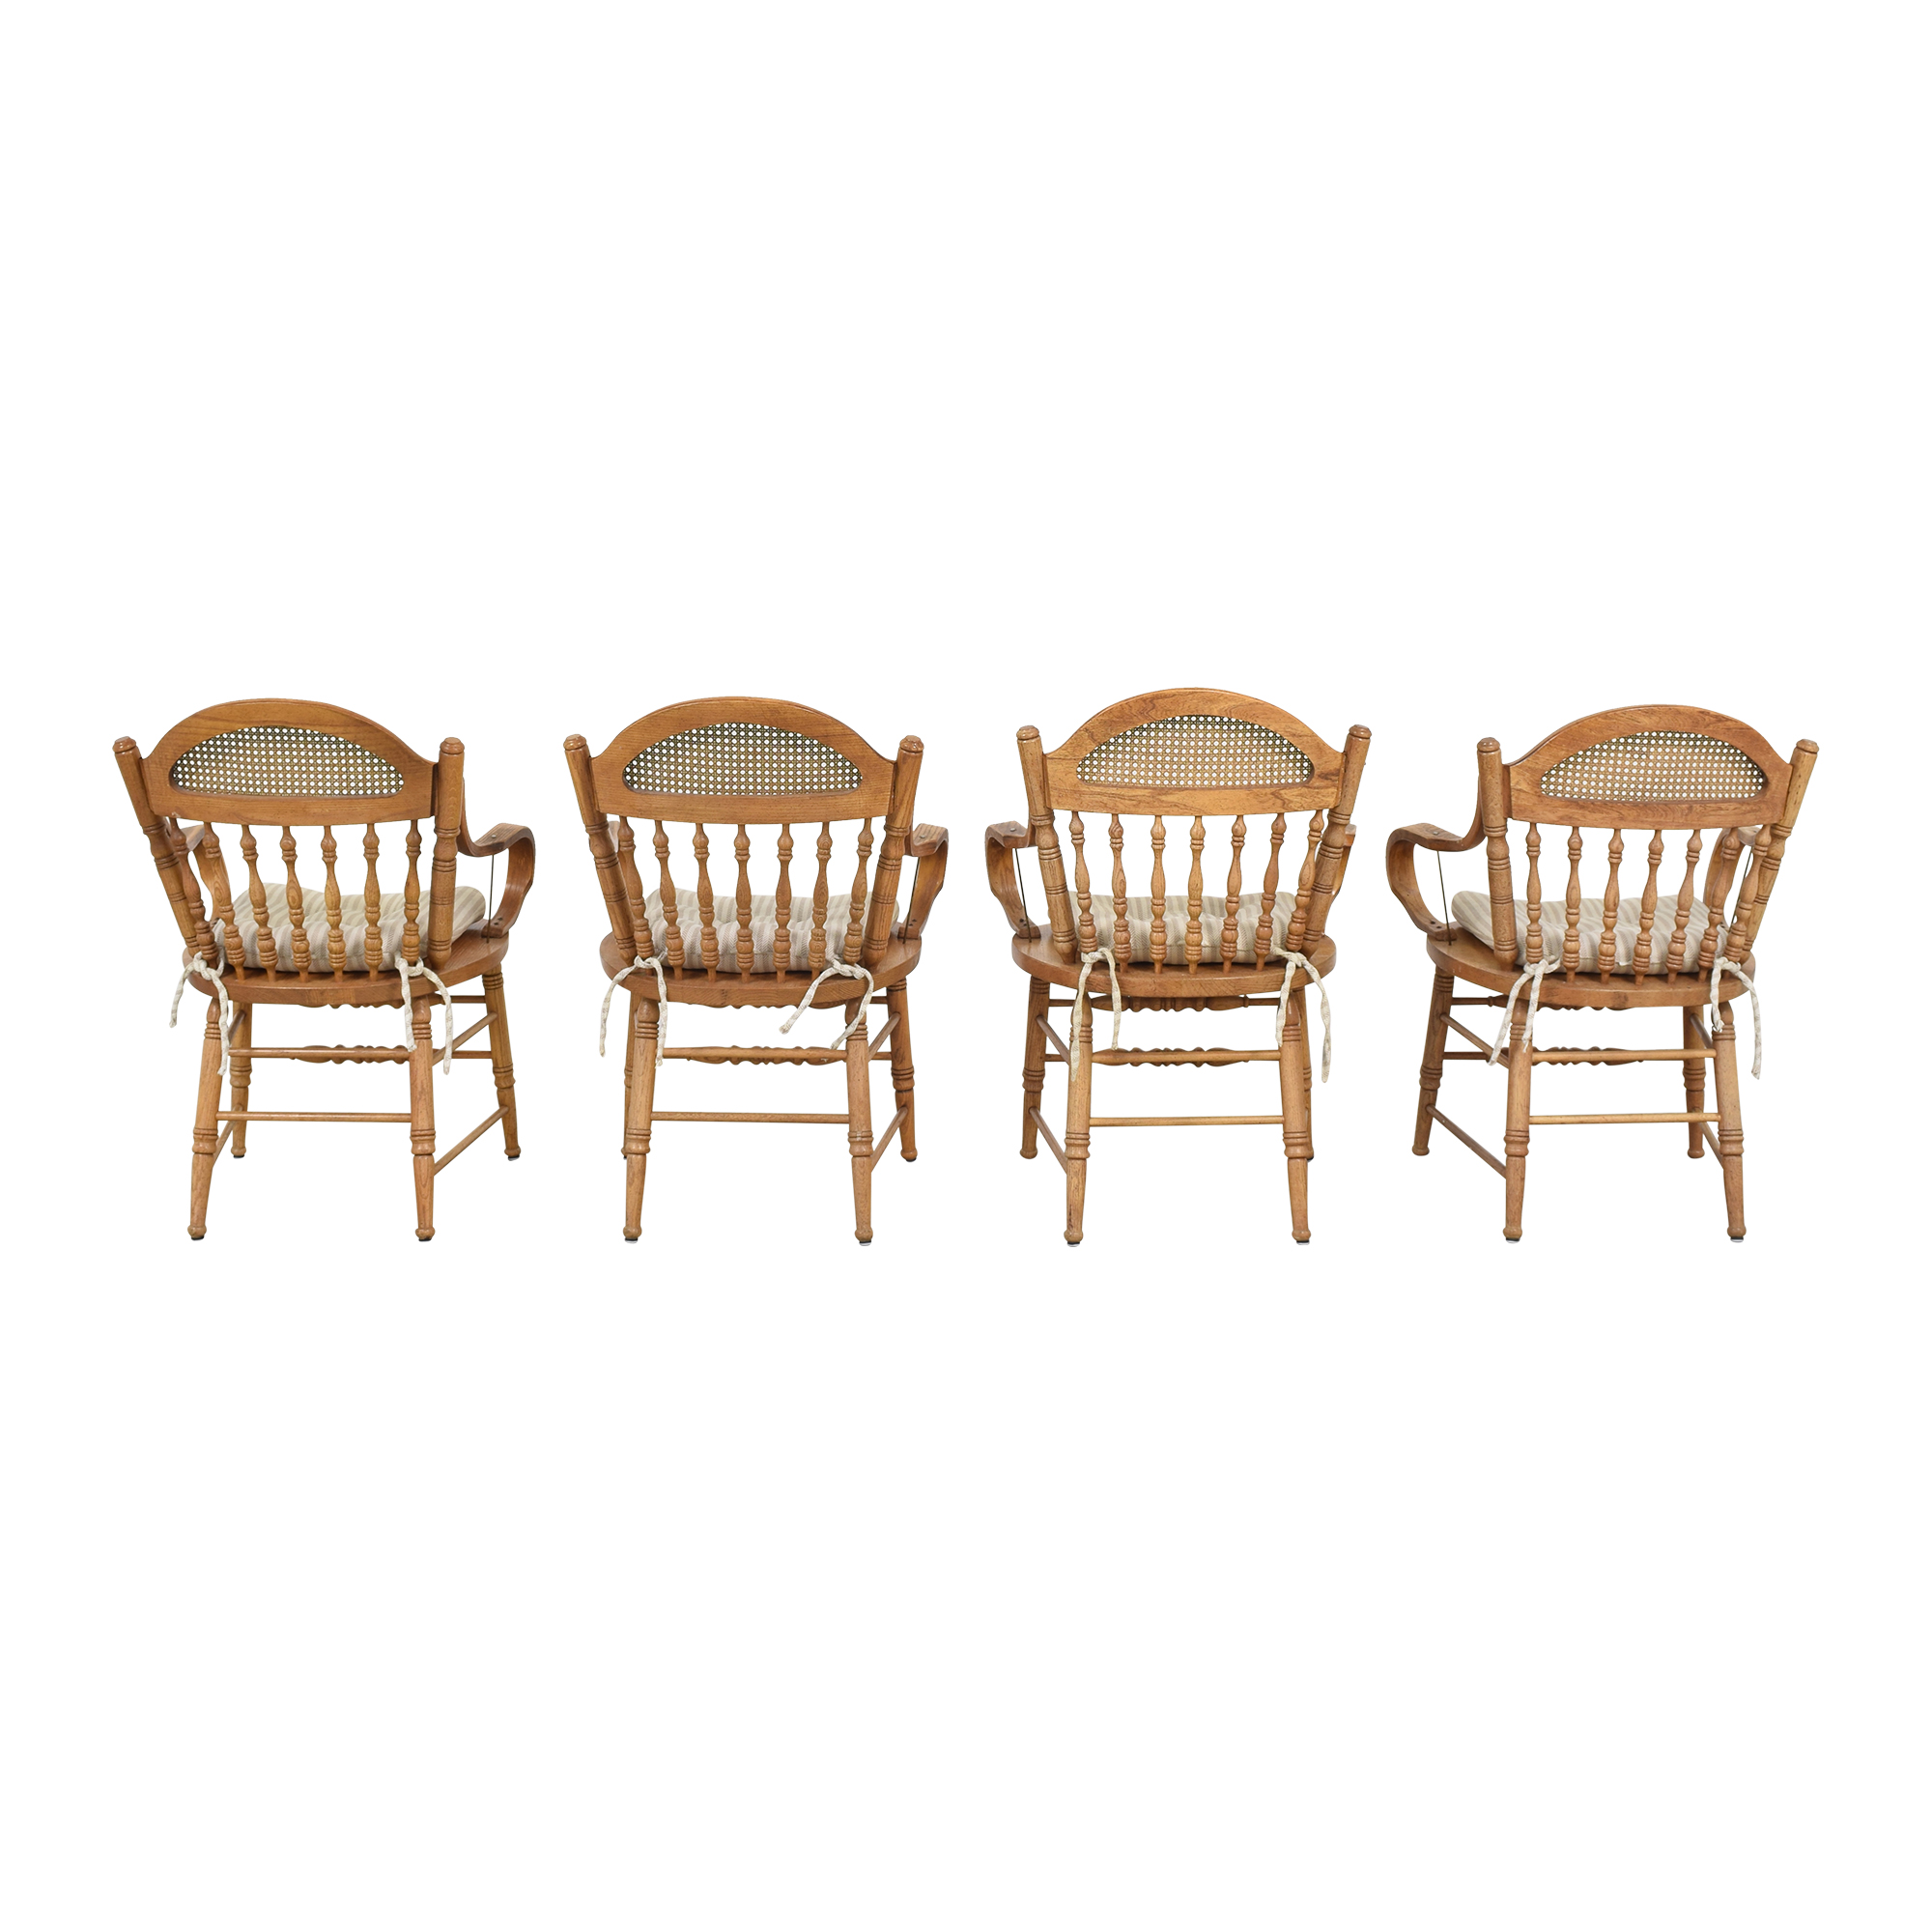 Oak Dining Arm Chairs with Cushions